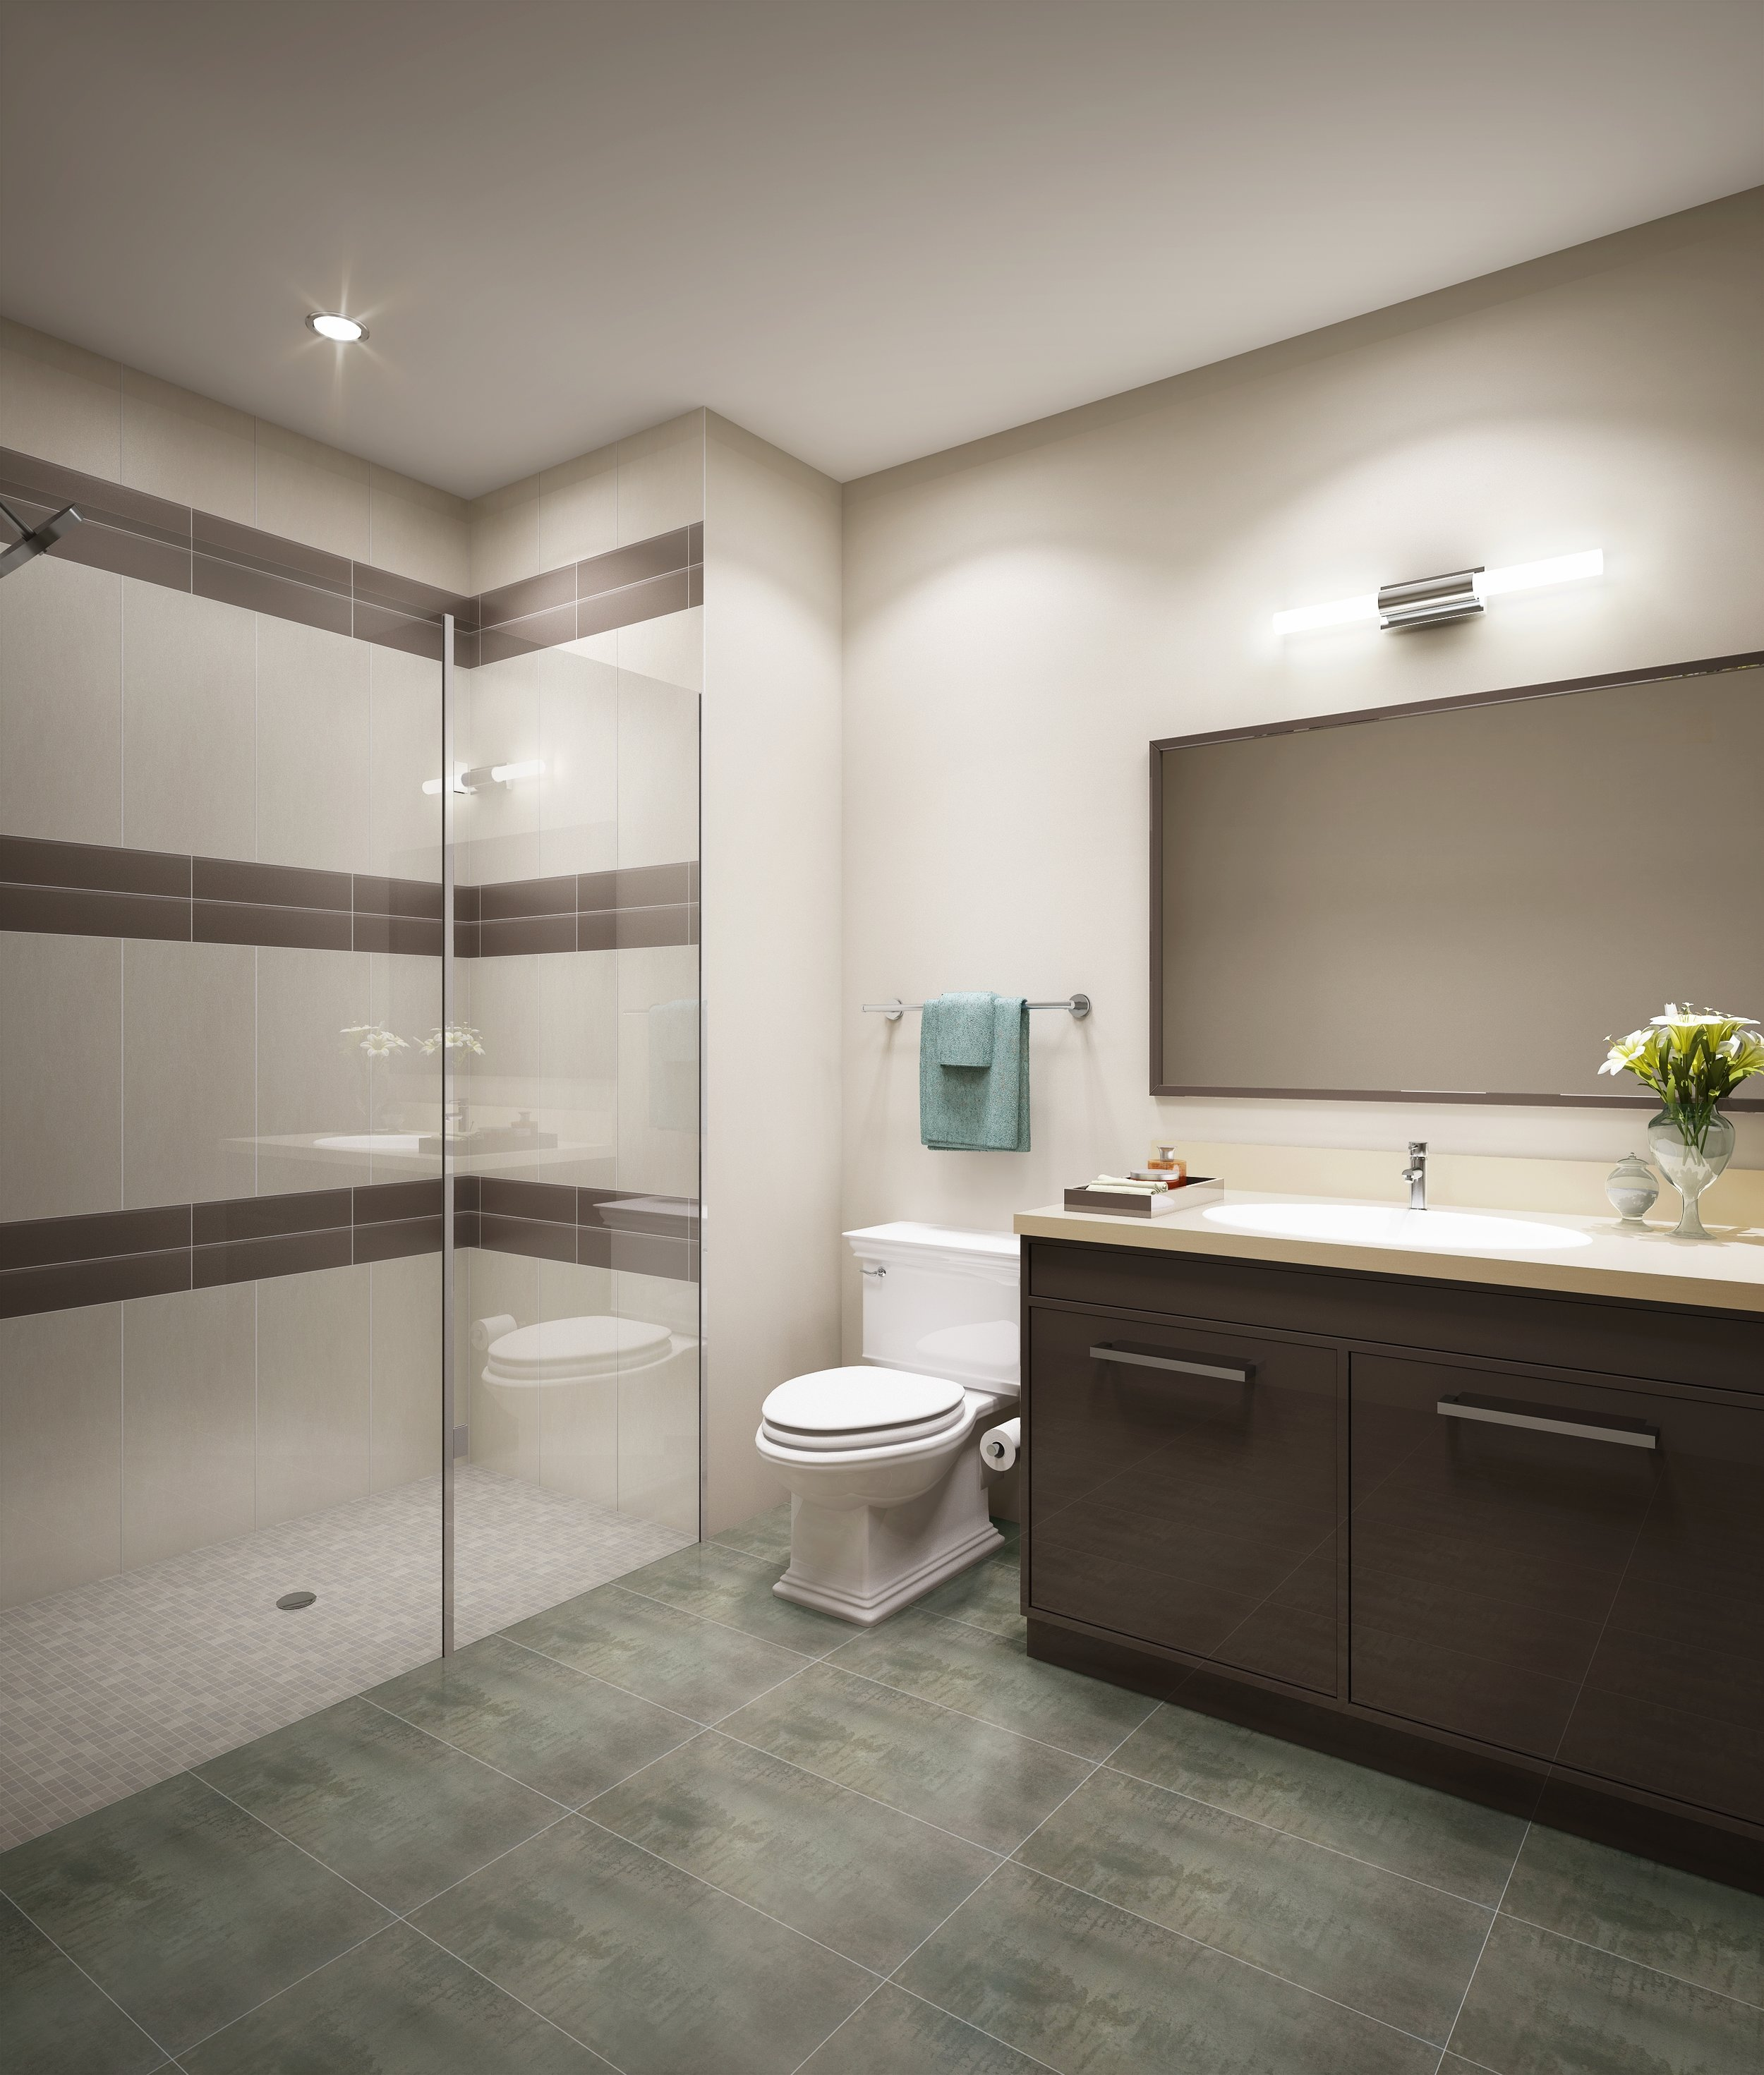 672 Flats - Unit Bathroom Rendering.jpg